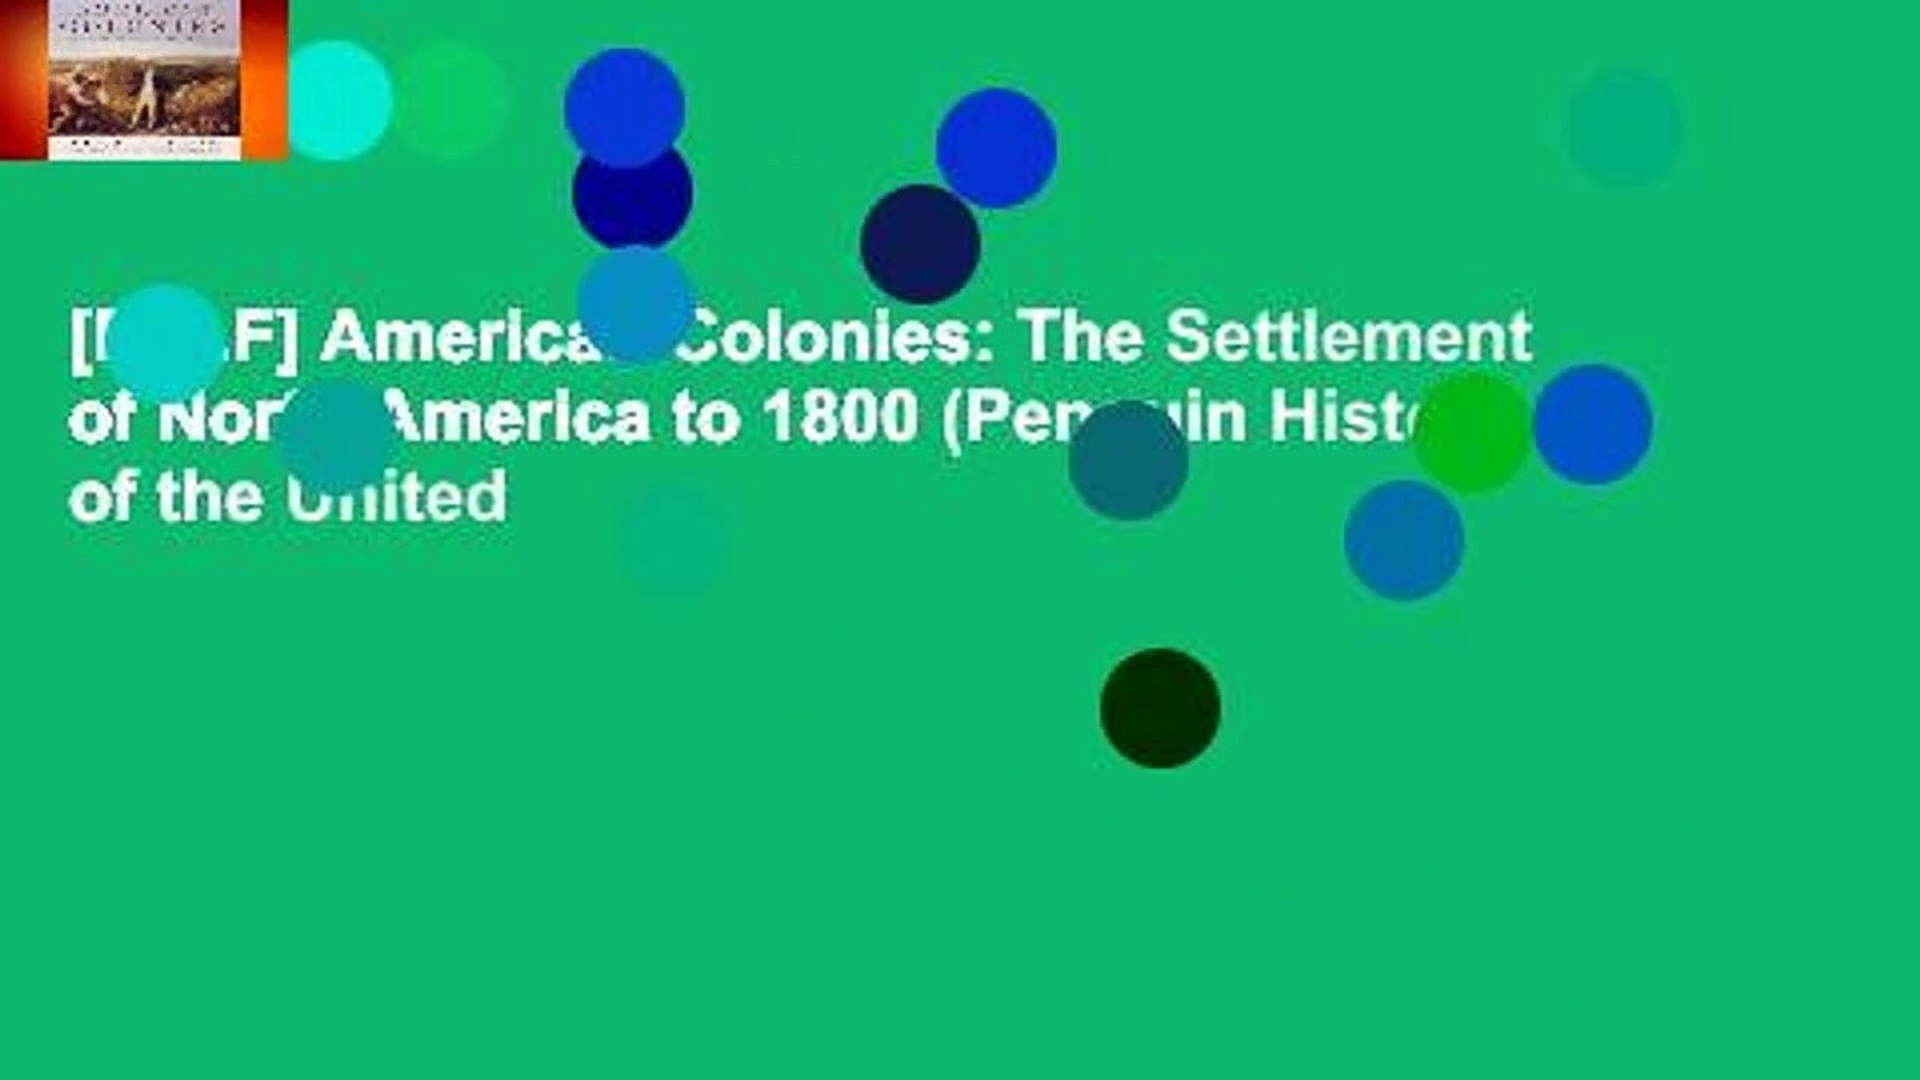 [P.D.F] American Colonies: The Settlement of North America to 1800 (Penguin History of the United